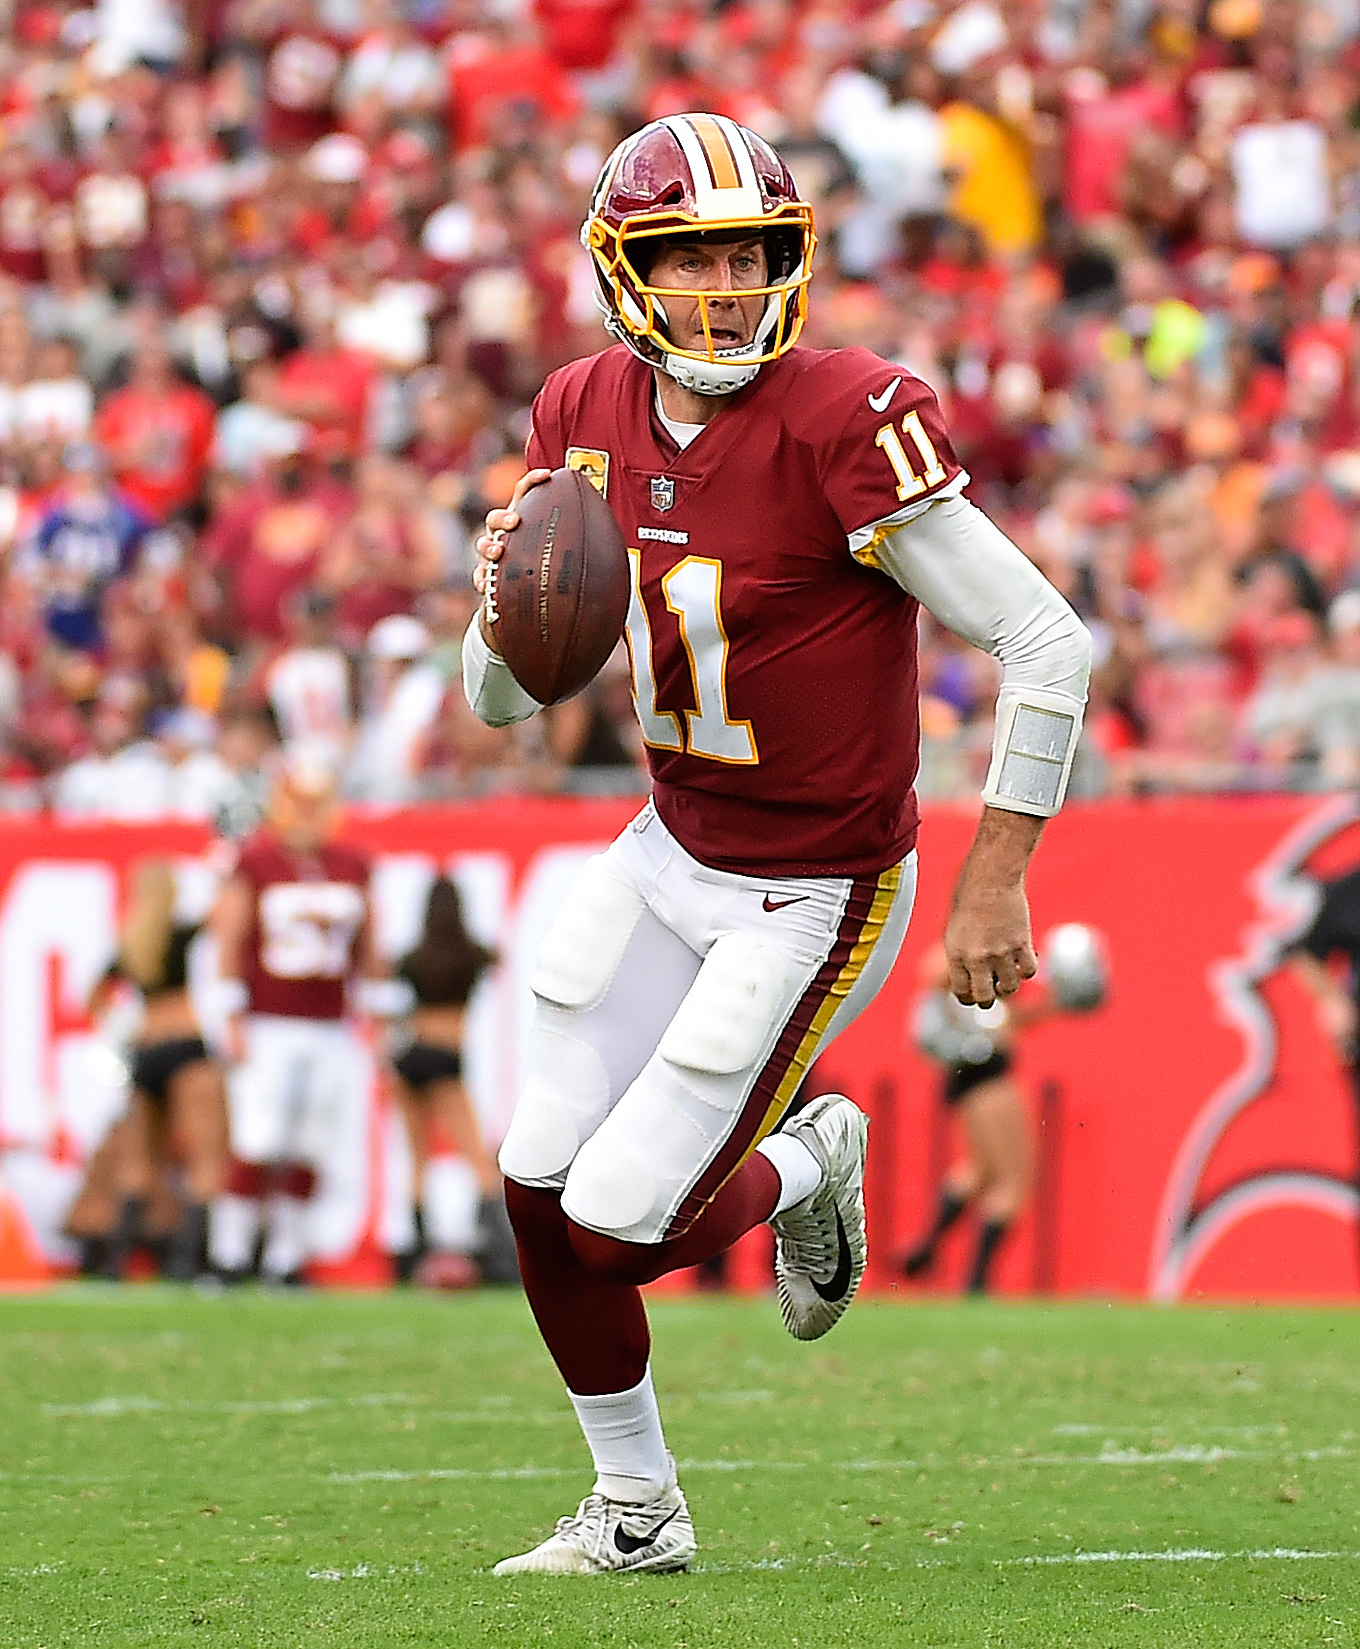 f4cd0a6b3b5 Redskins quarterback Alex Smith is battling an infection in his broken  fibula and tibia, sources tell Ian Rapoport of NFL.com (on Twitter).